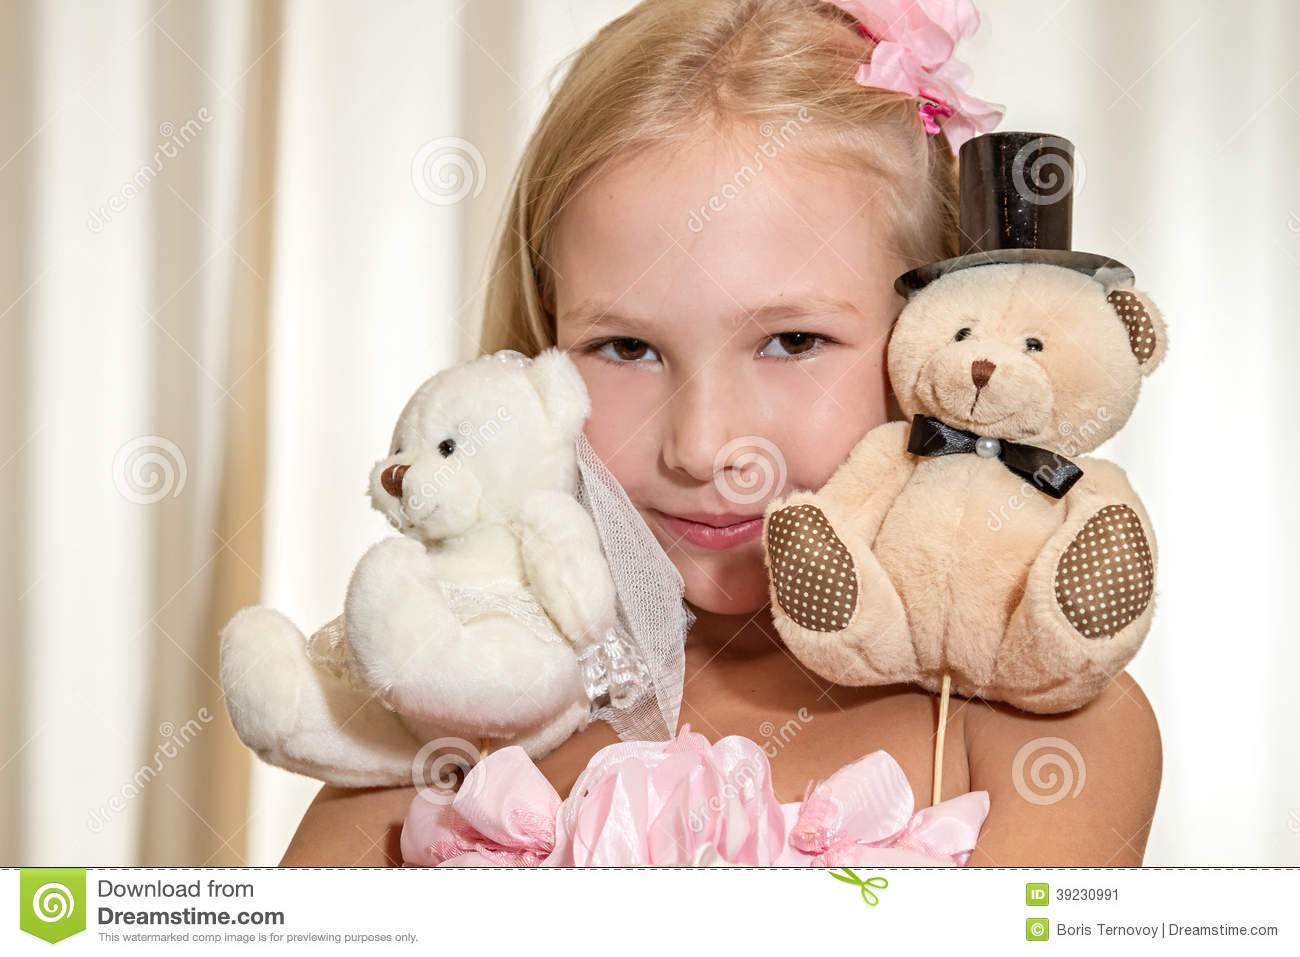 jeux de petite fille avec le nounours ours de mariage photo stock image 39230991. Black Bedroom Furniture Sets. Home Design Ideas